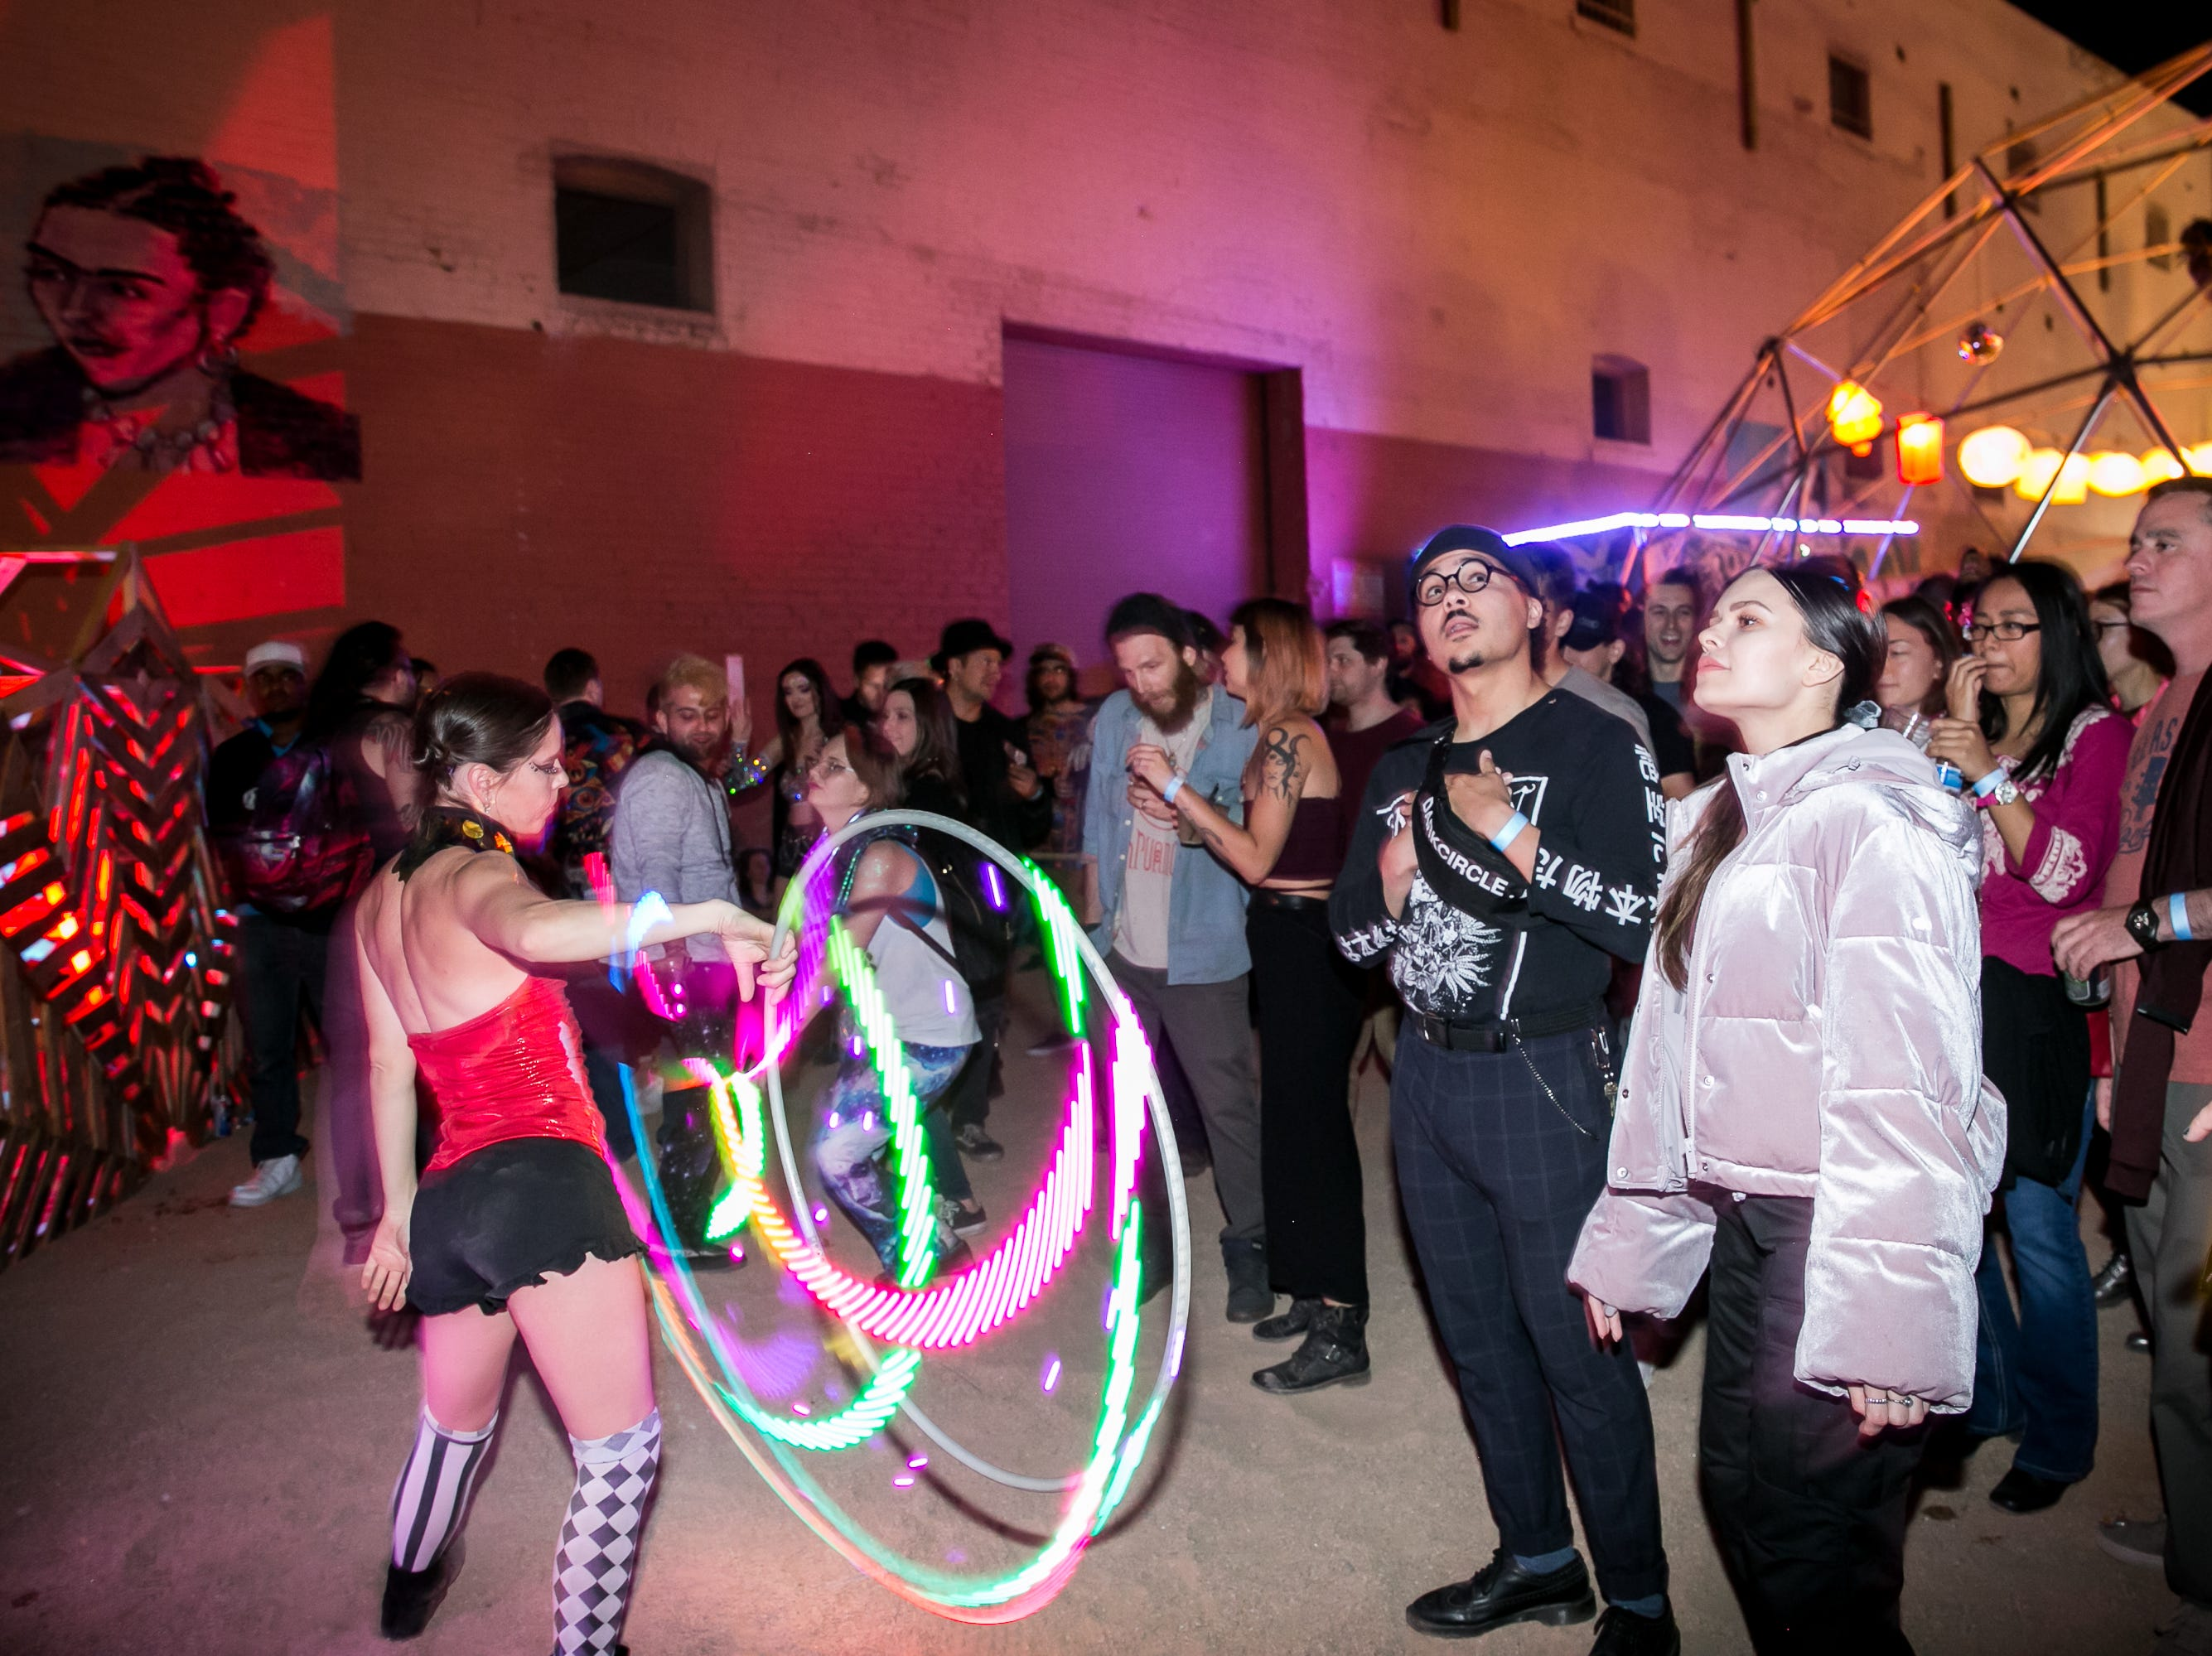 Hoop dancers were fun to watch at the Full Moon Festival at the Pressroom on March 23, 2019.